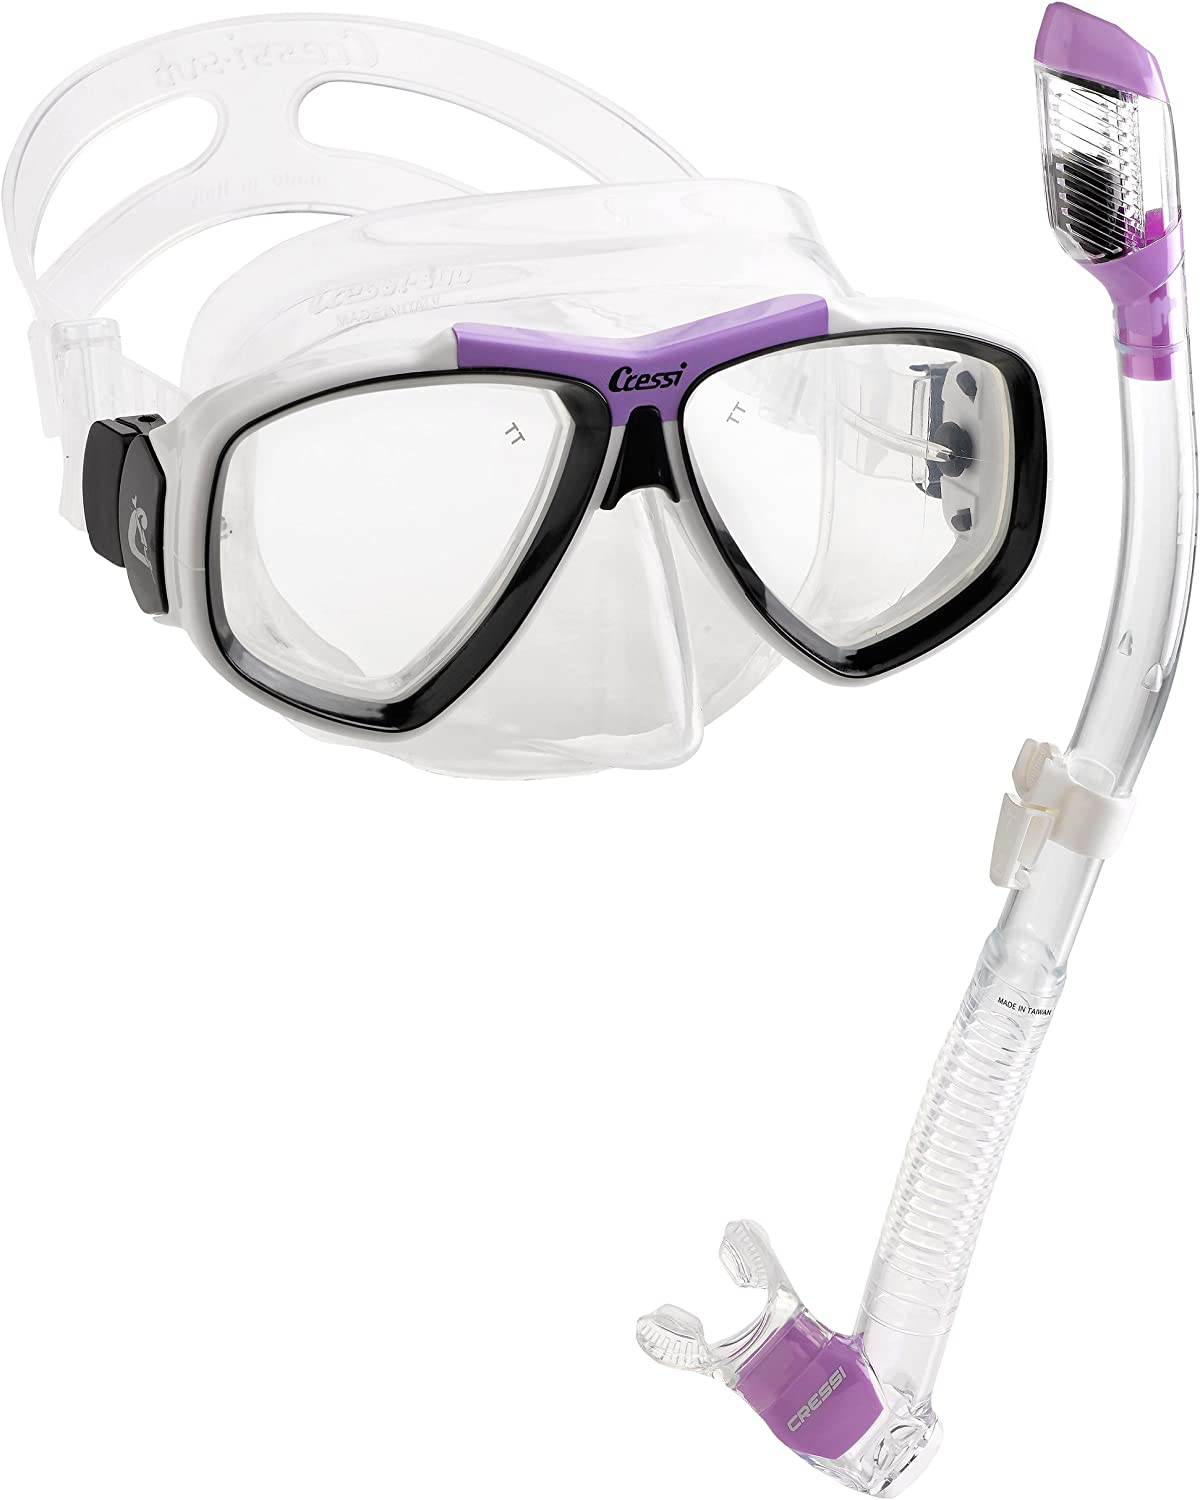 Cressi Focus Snorkeling Dive Mask with 100% Dry Snorkel Set